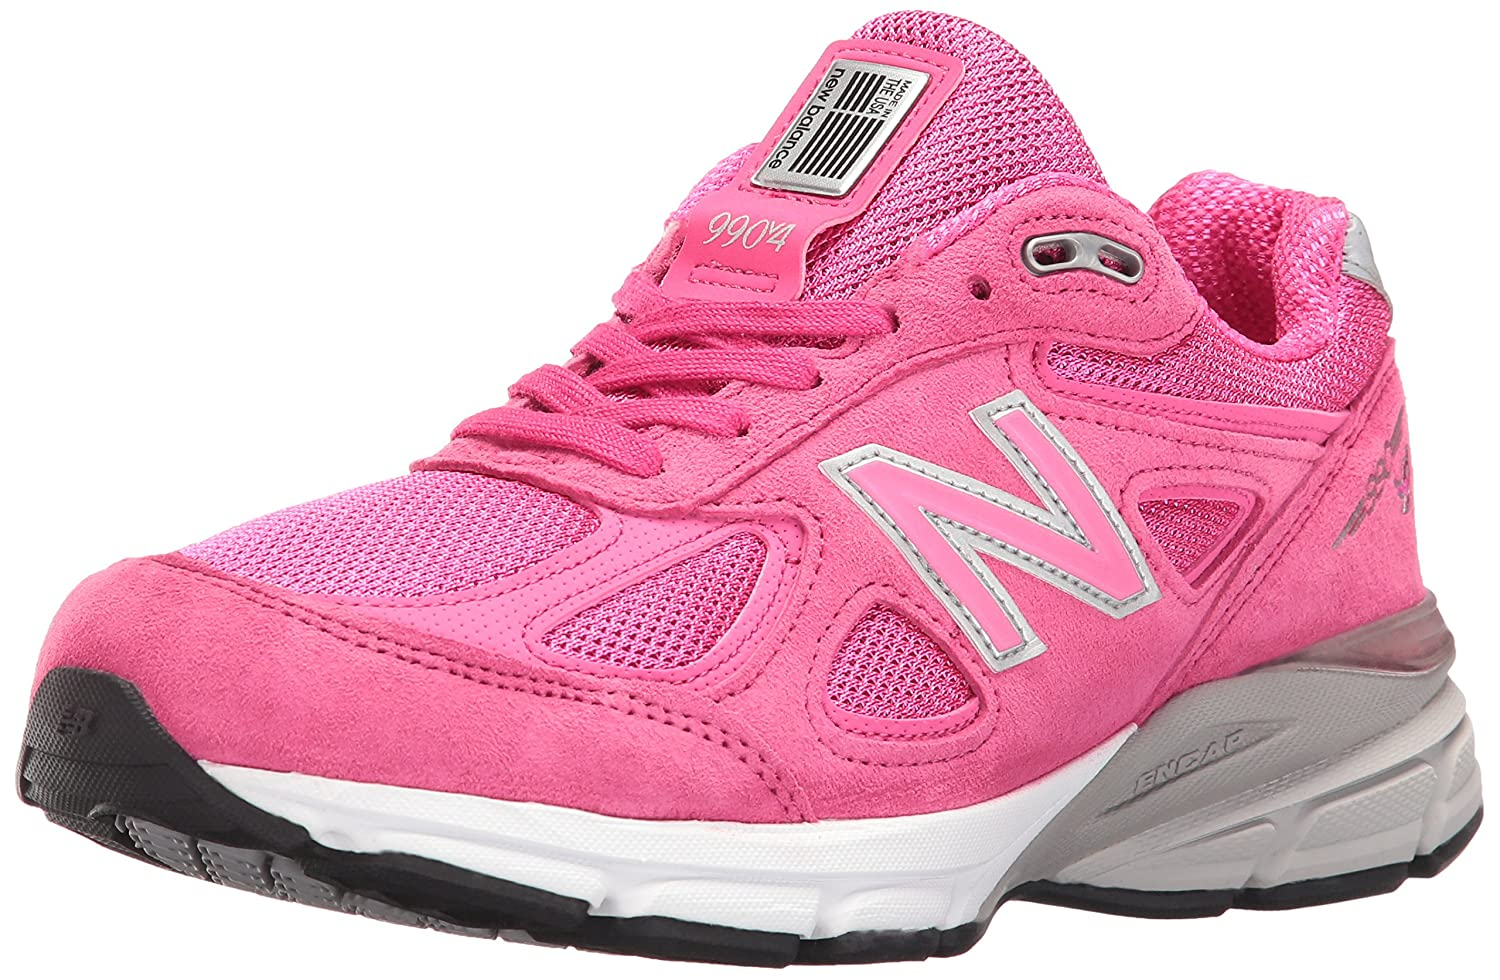 Rose Violet New Balance Wohommes w990v4 Running chaussures 43.5 EU